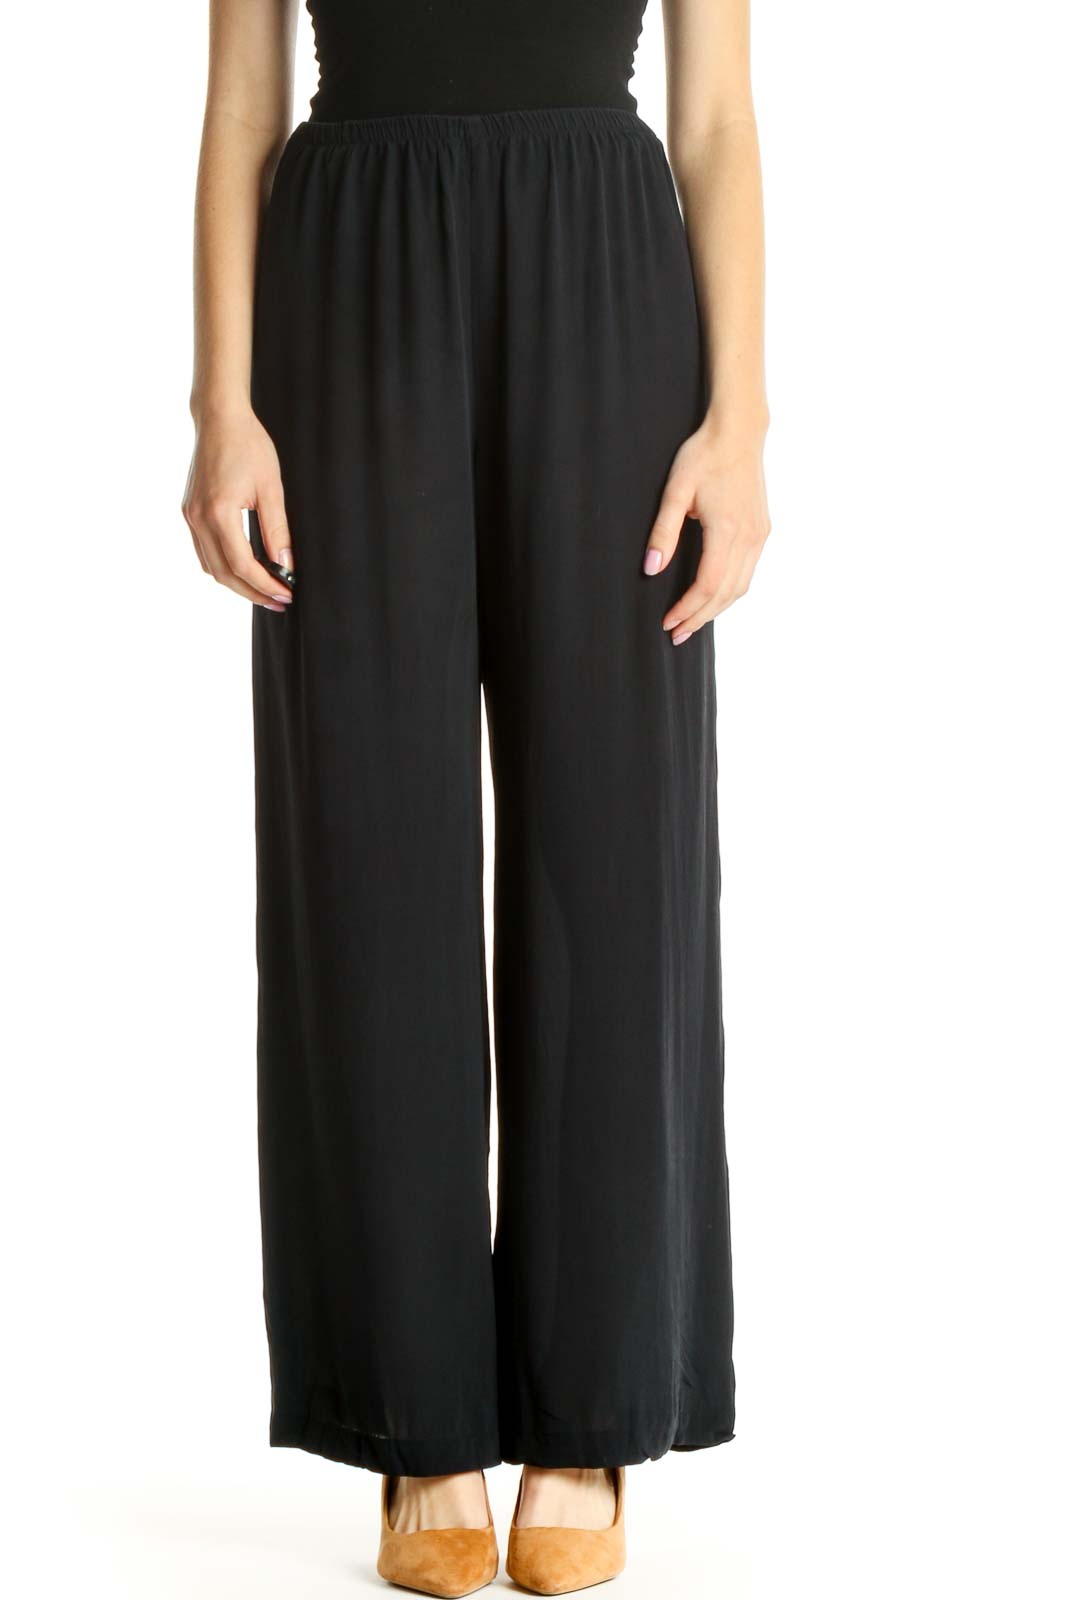 Black Solid Classic Palazzo Pants Front